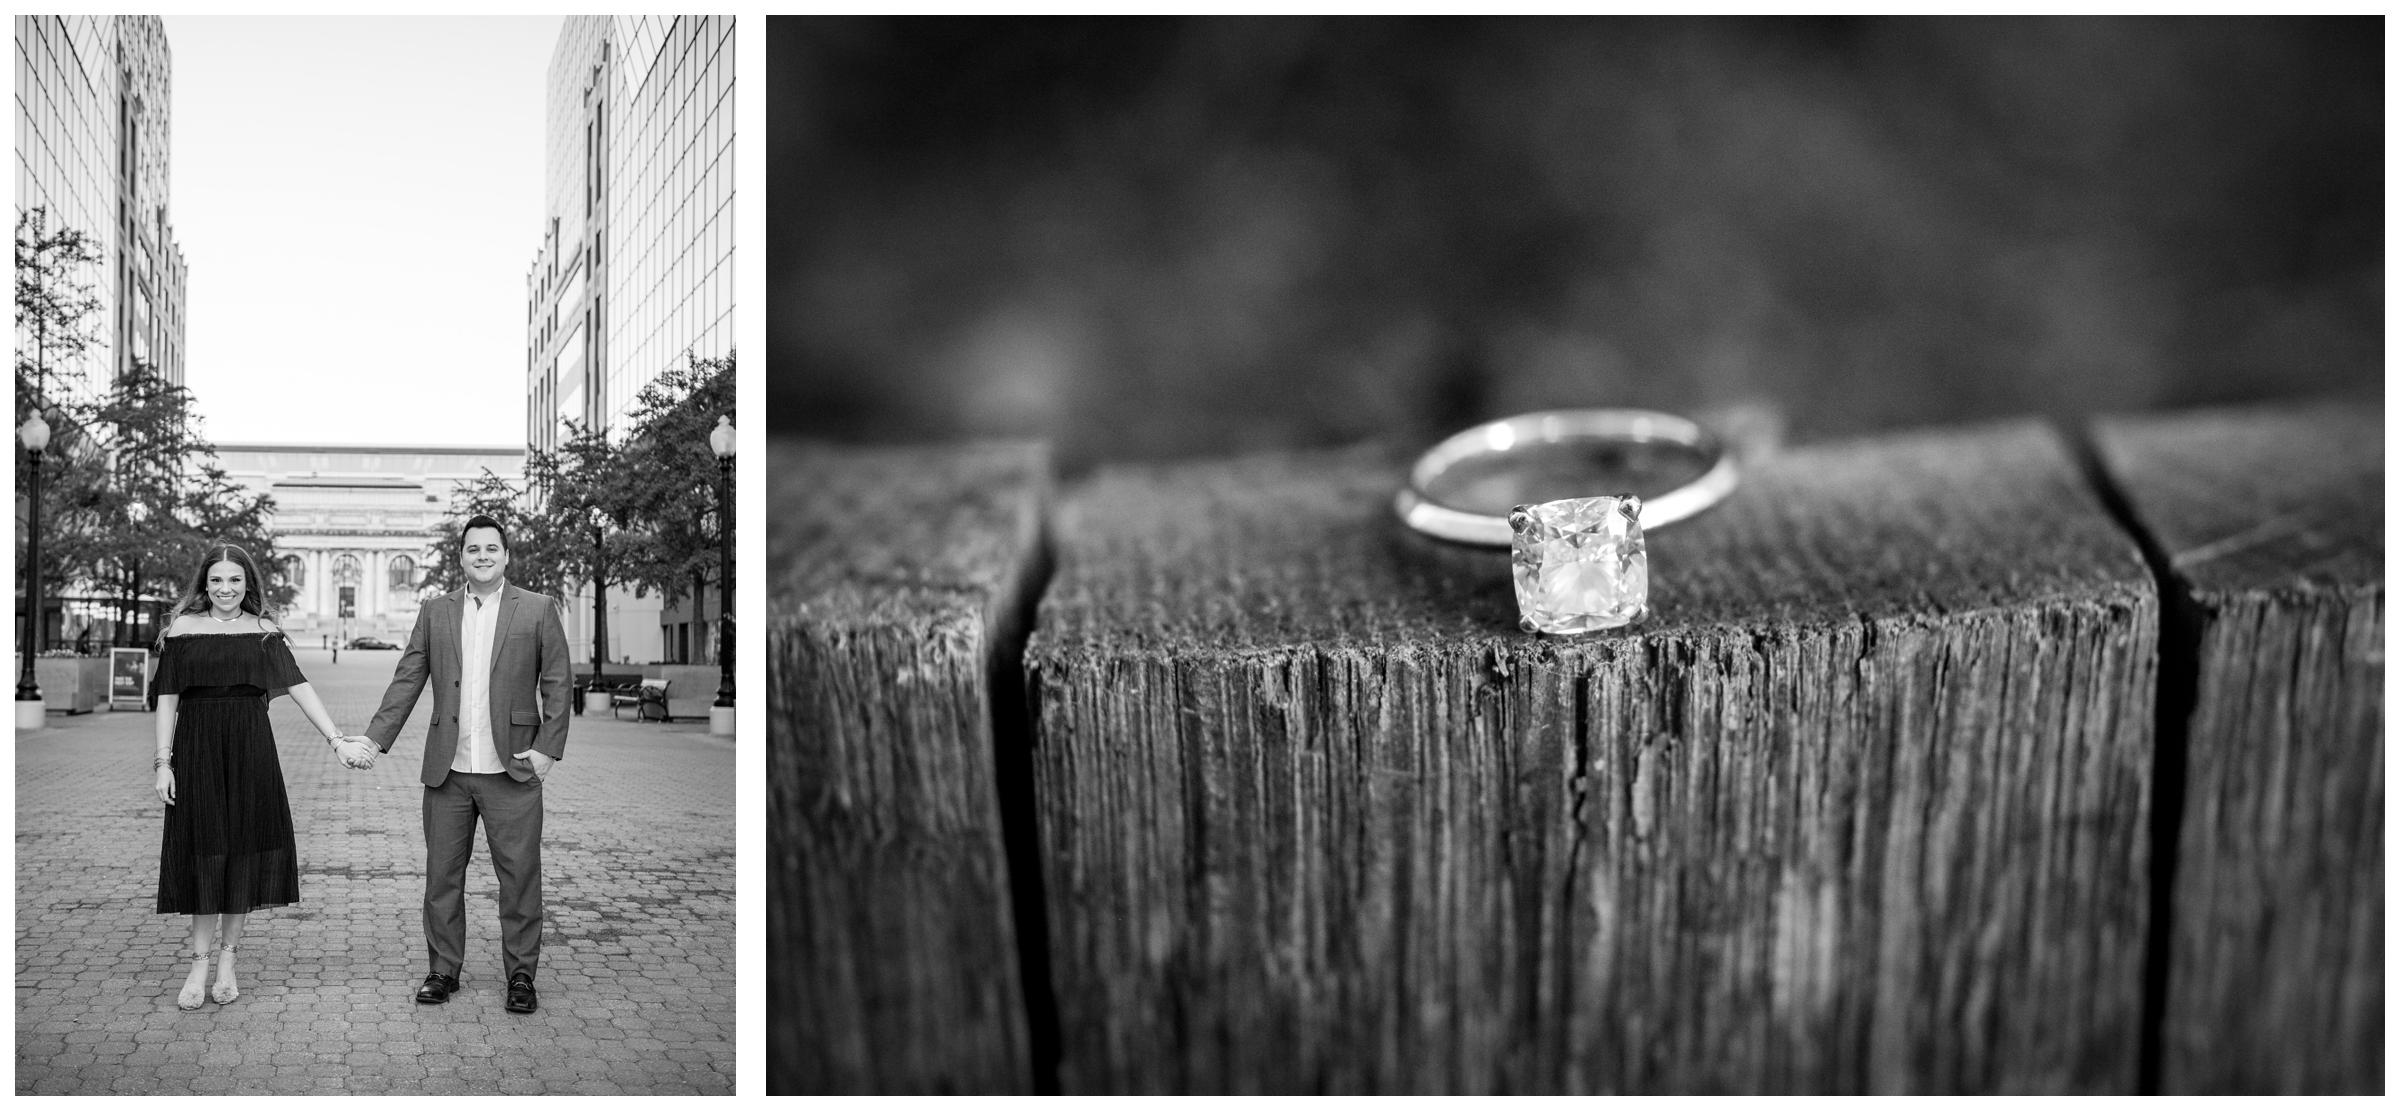 urban engagement session in downtown Washington, D.C.